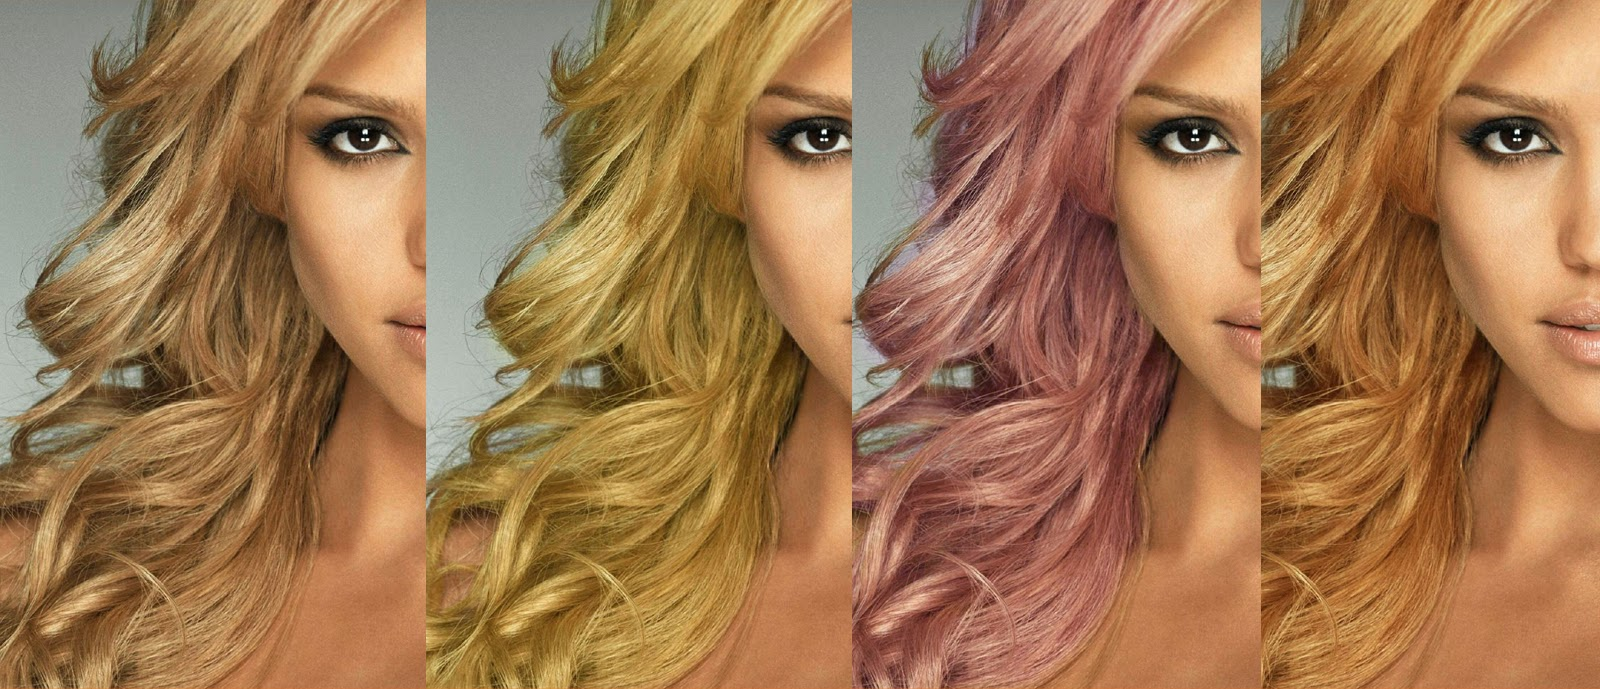 Change Hair Color Using Photoshop Photoediting Tutorials